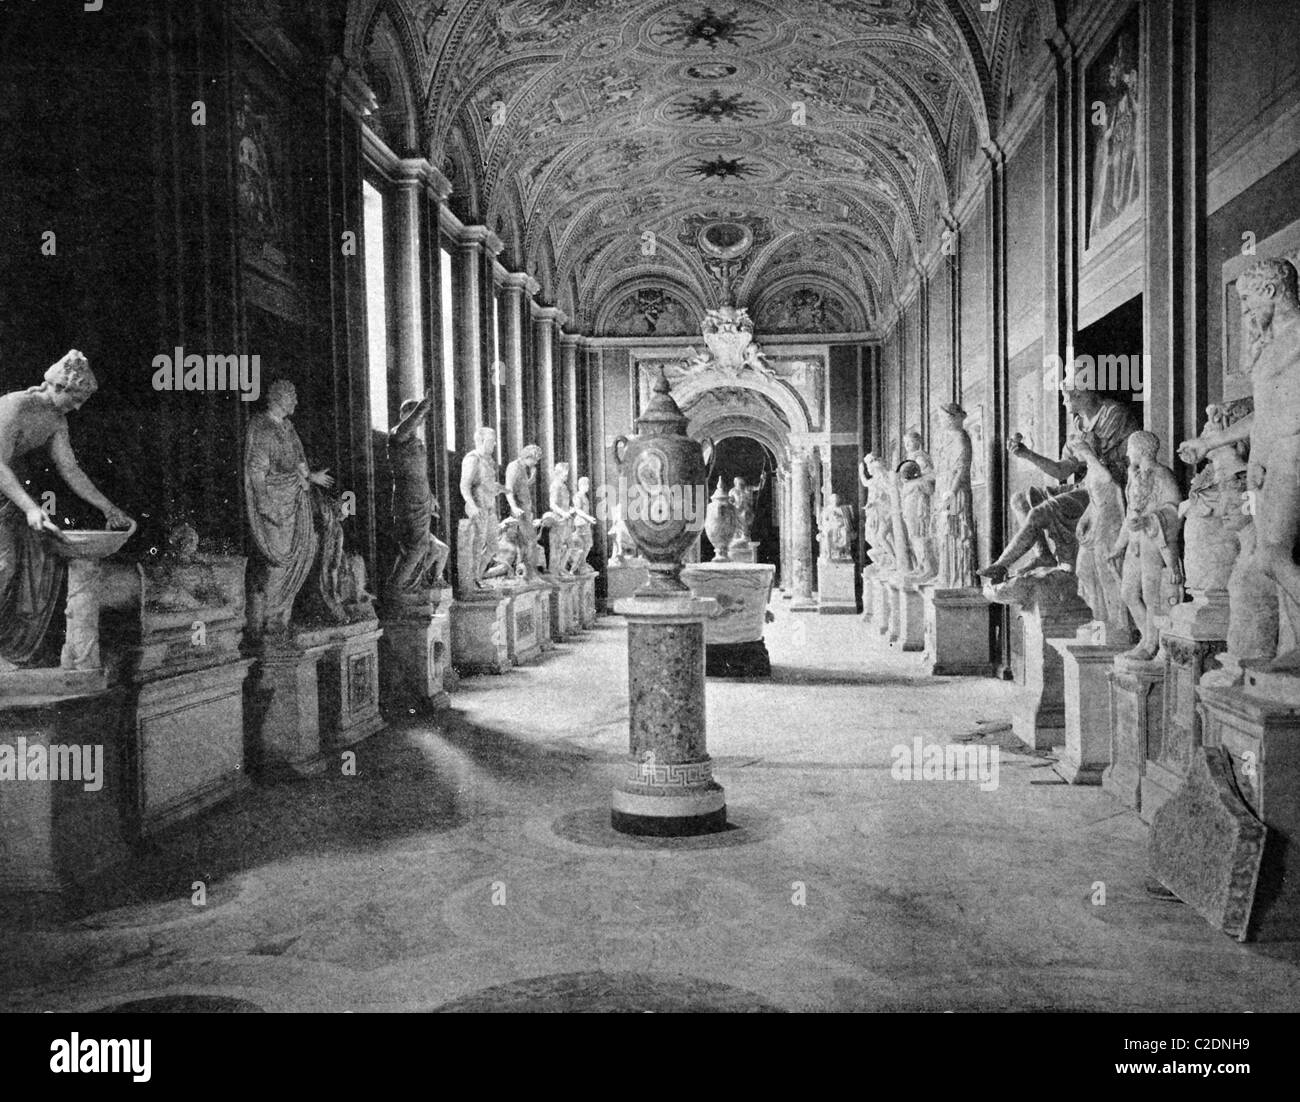 One of the first autotypes of the Vatican Museum, Rome, historical photograph, 1884 - Stock Image